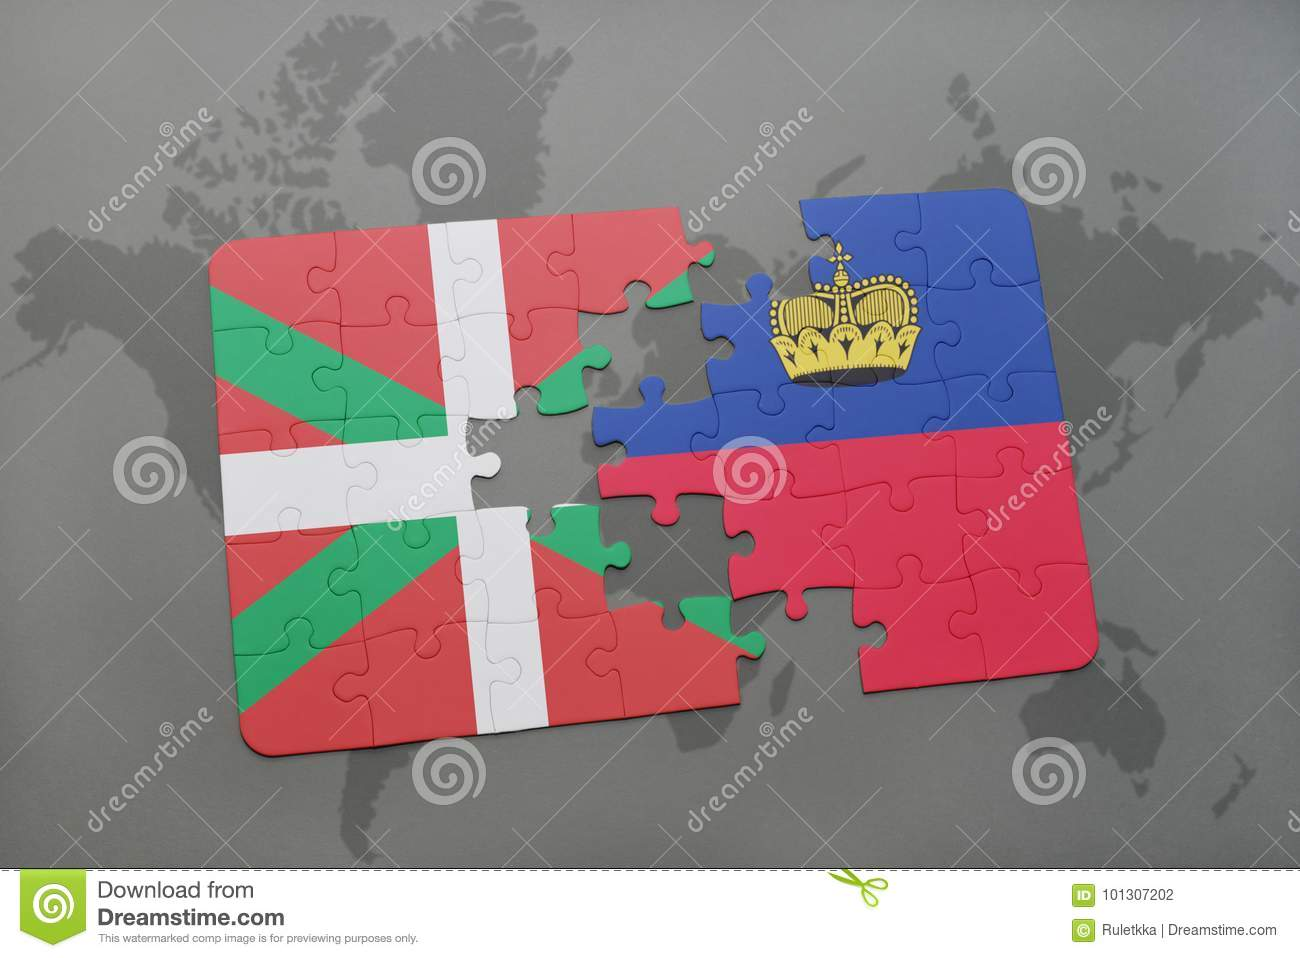 Puzzle With The National Flag Of Basque Country And Liechtenstein On